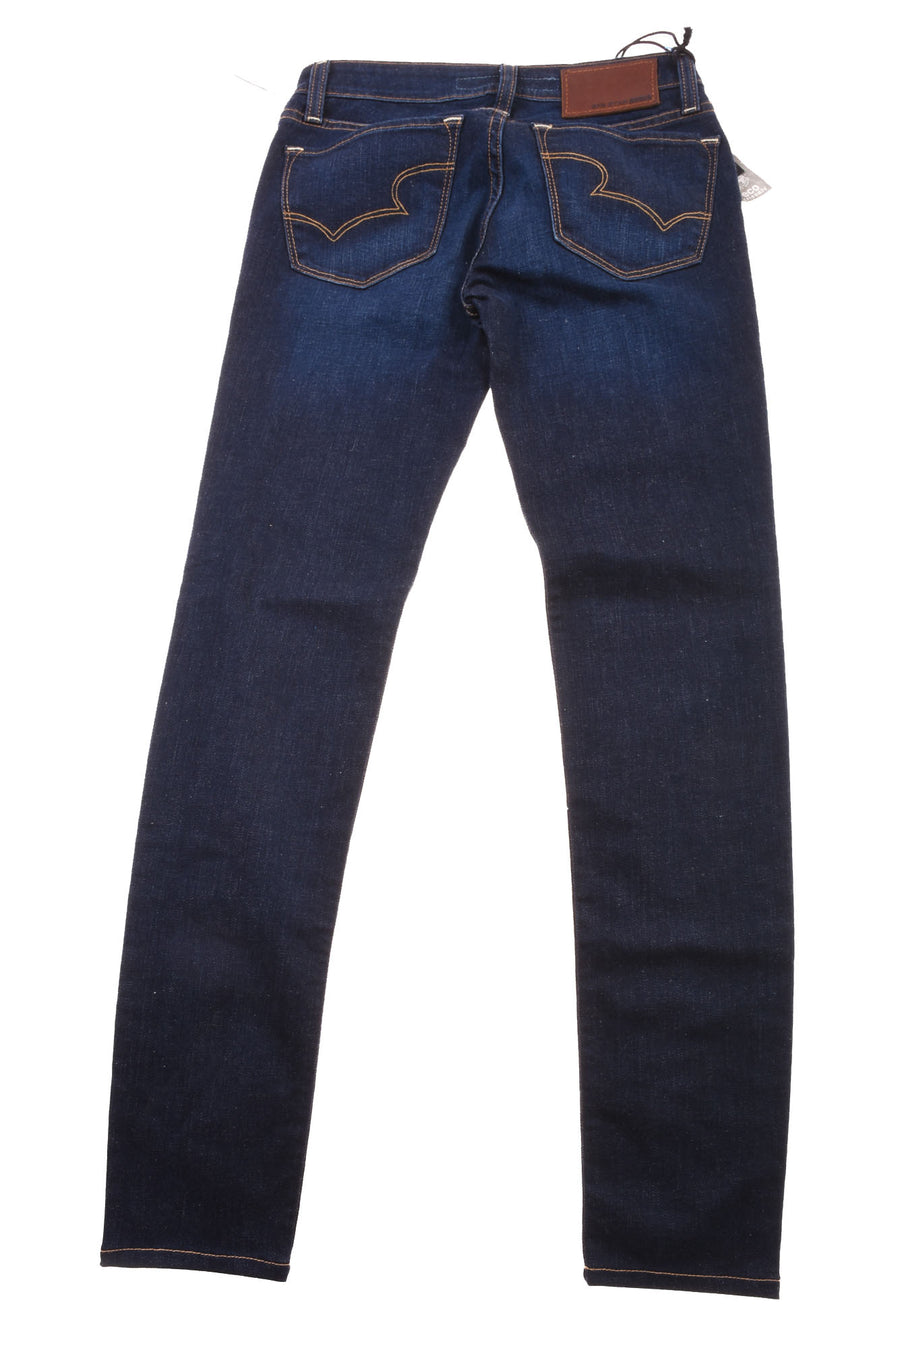 NEW Big Star Women's Jeans 25 Blue